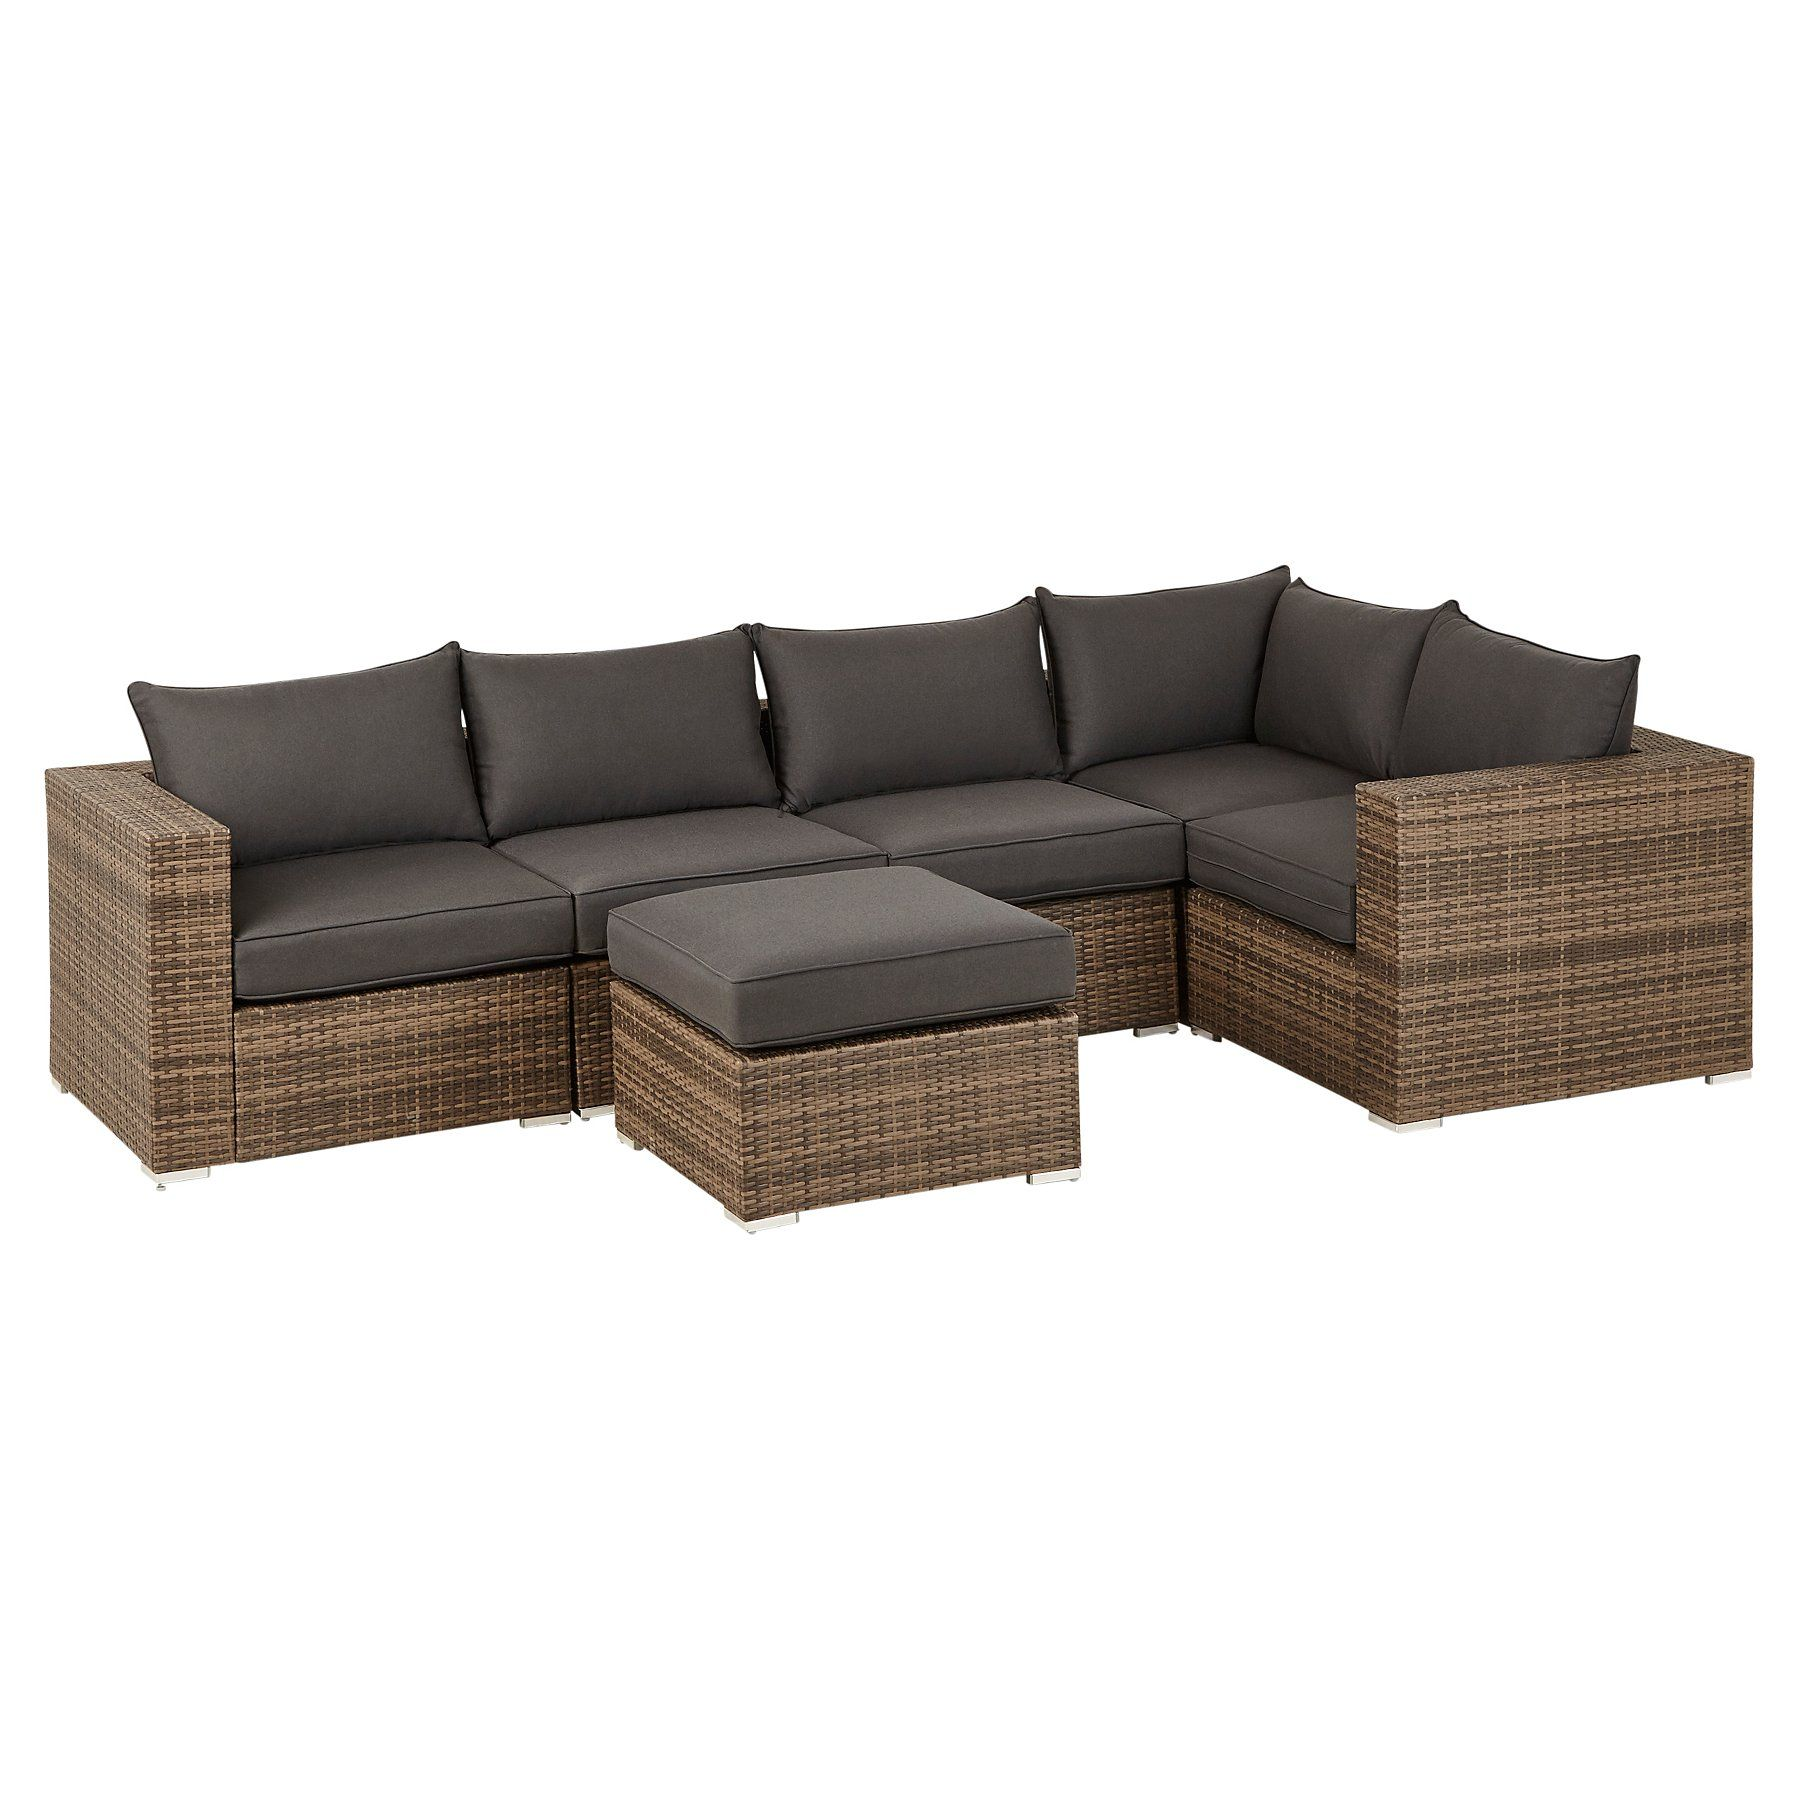 Borneo Corner Group Sofa  Outdoor & Garden  George  Garden sofa